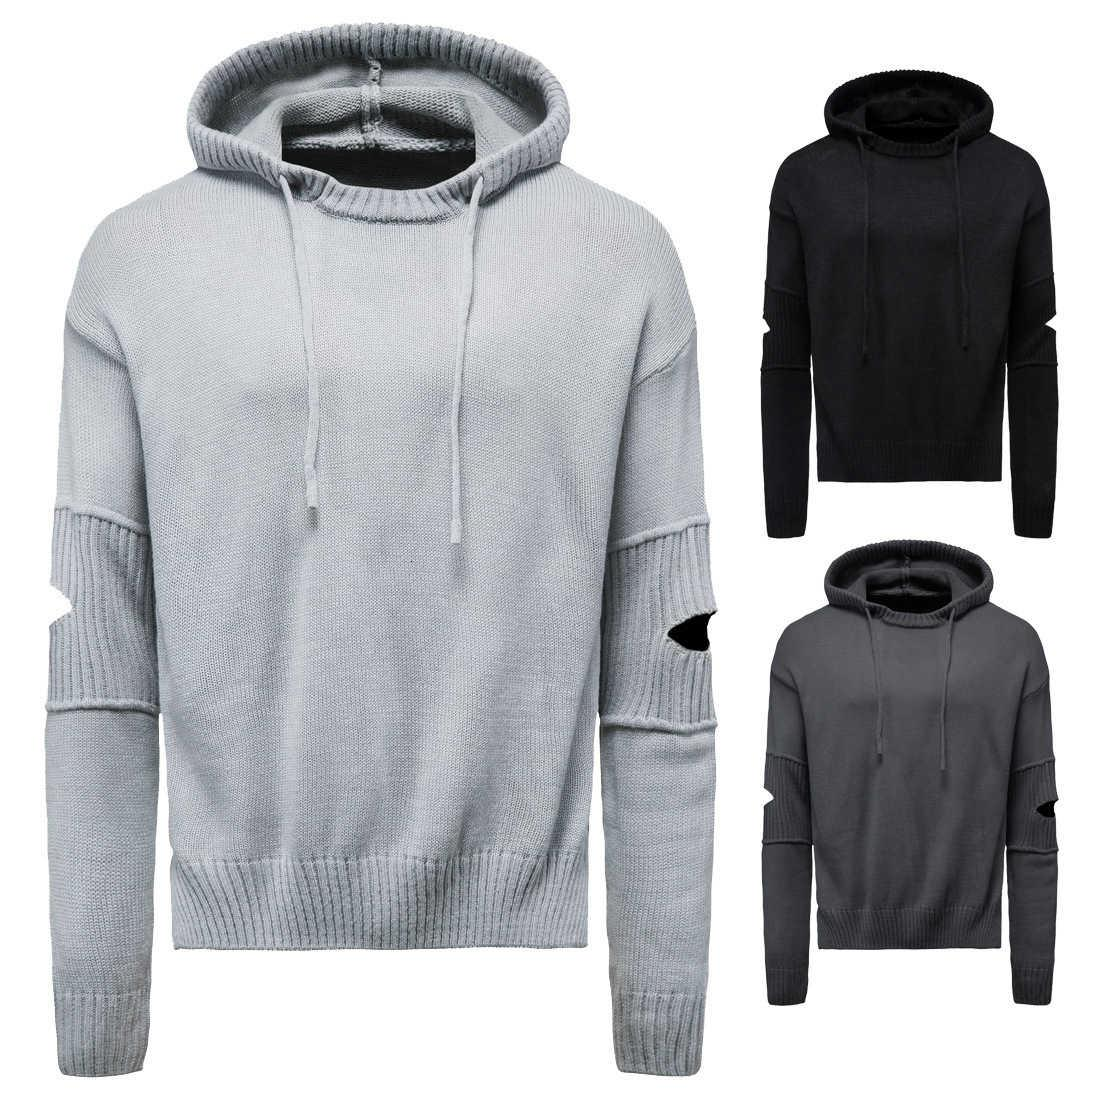 2021 autumn solid color versatile T-shirt young men's Sweaters personality trend handsome hooded Pullover